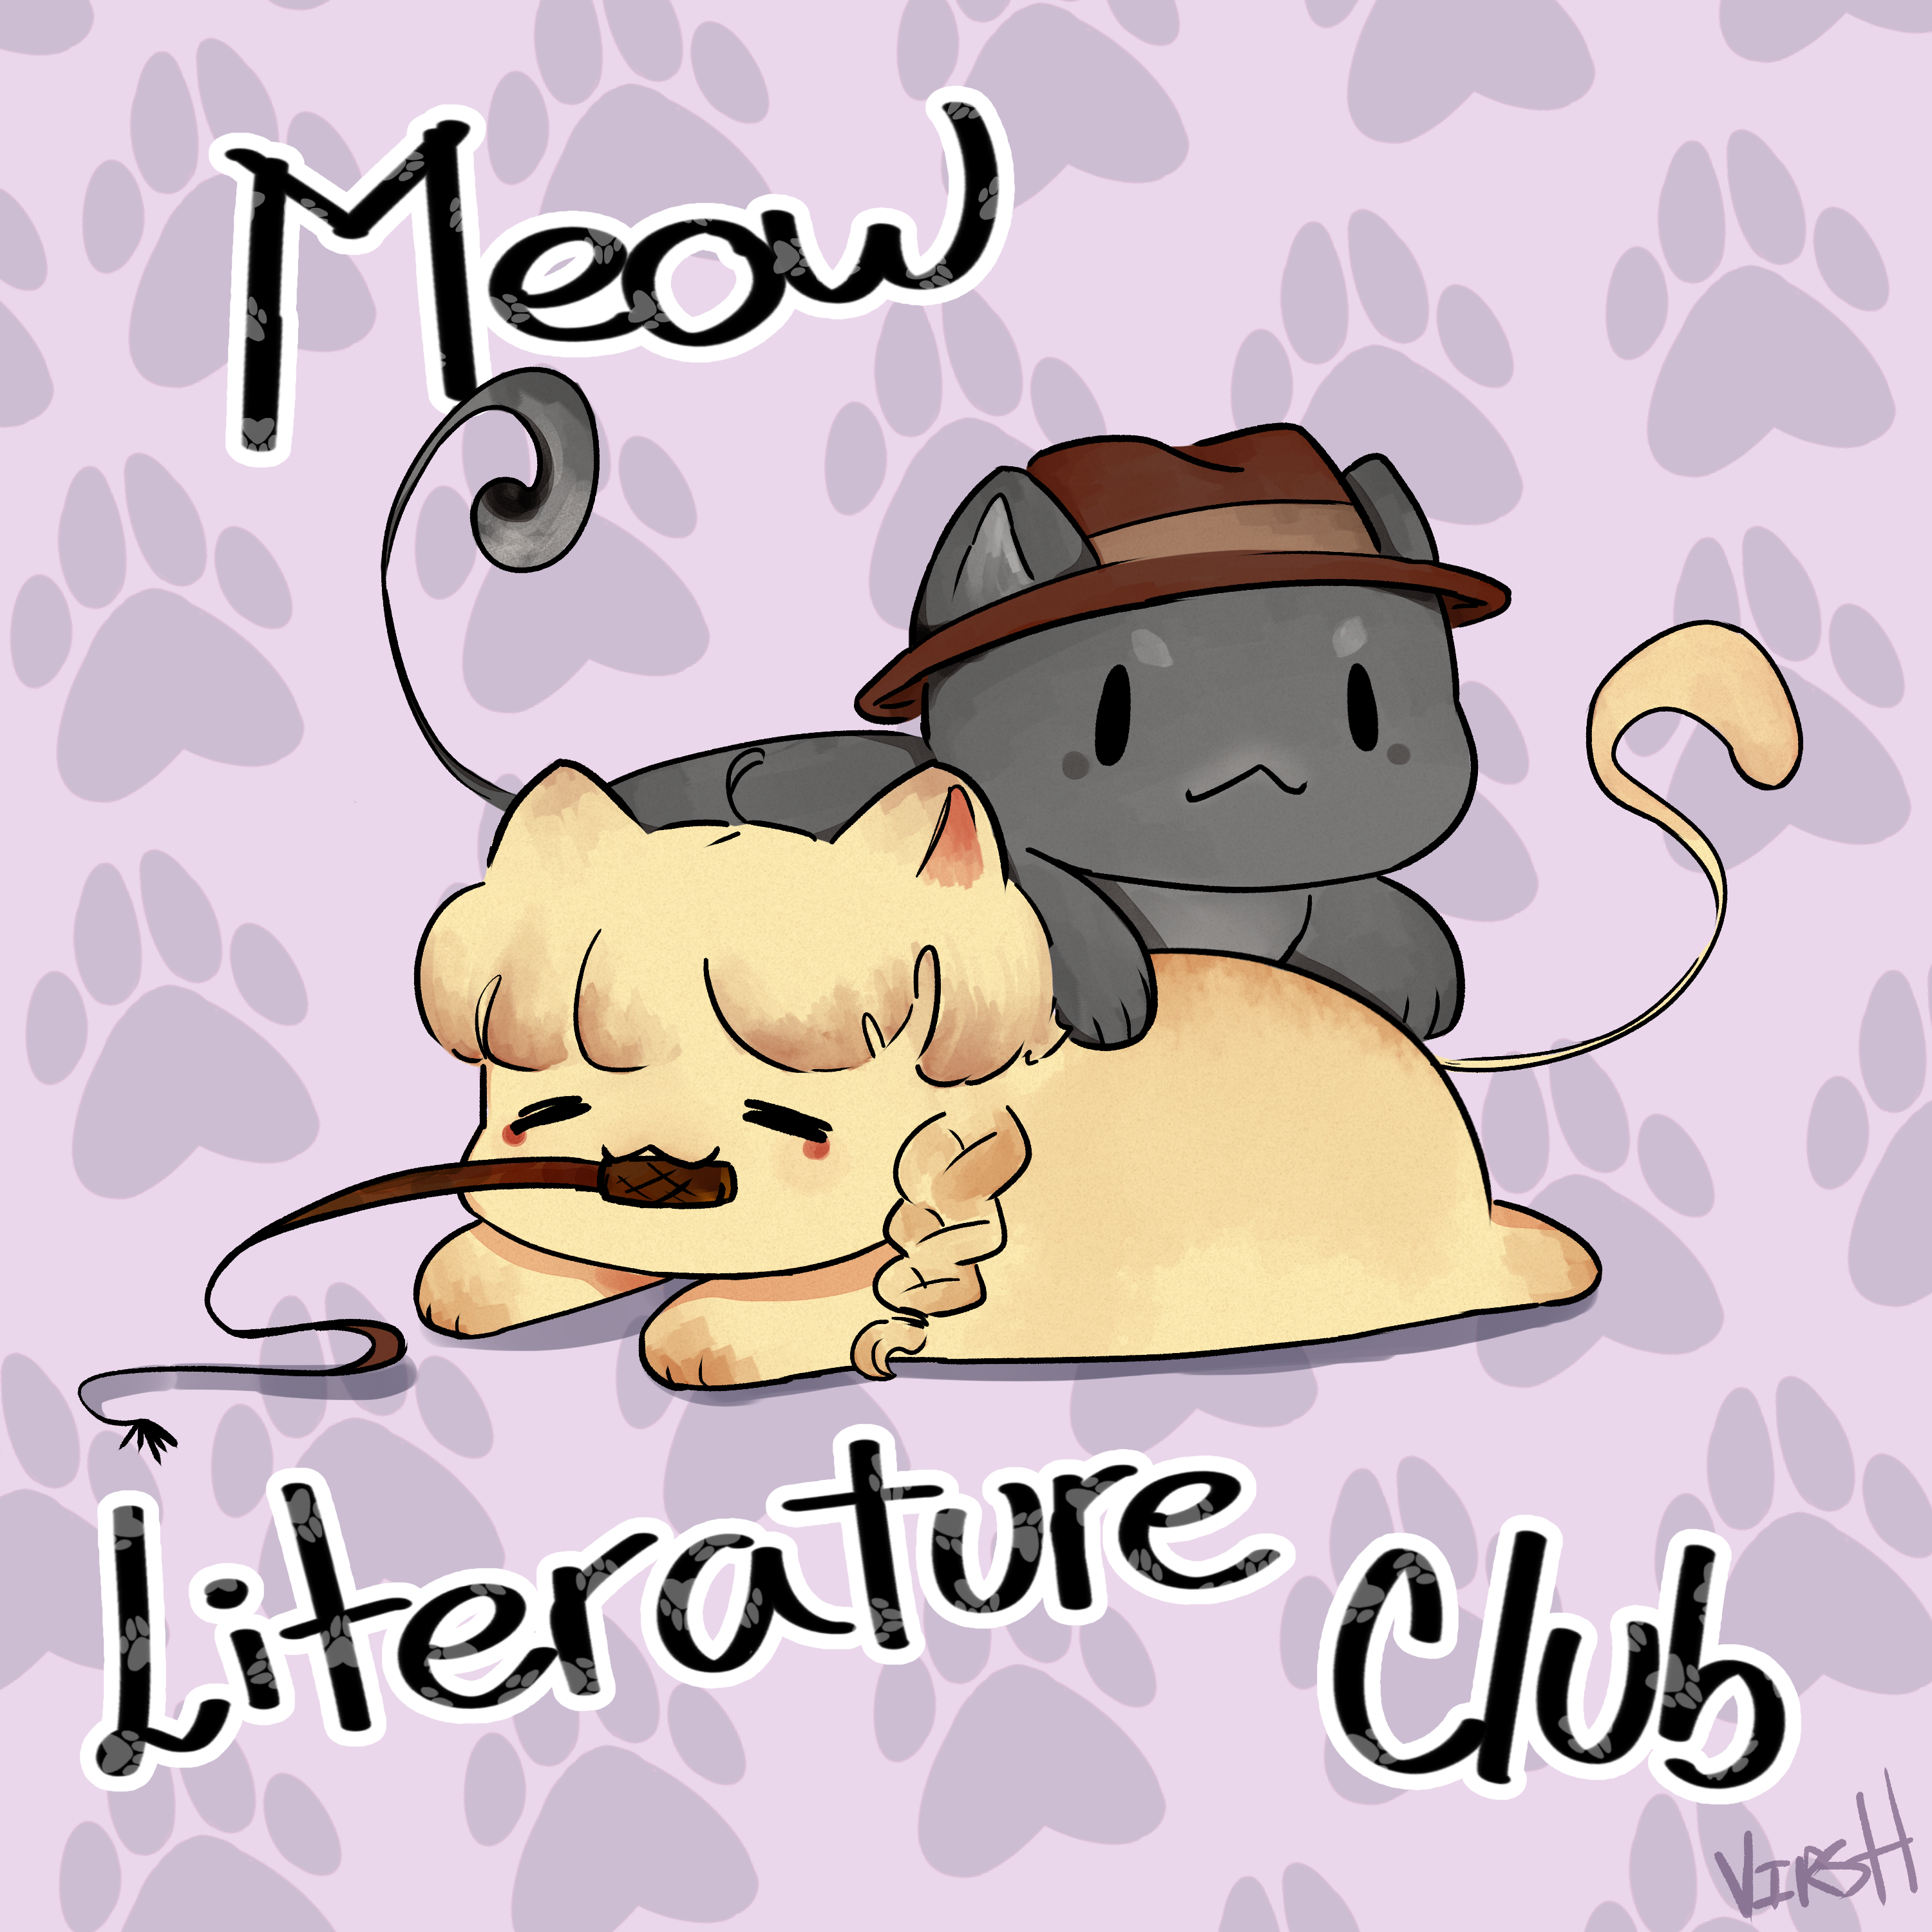 meow_literature_club-2-by-virsh.png